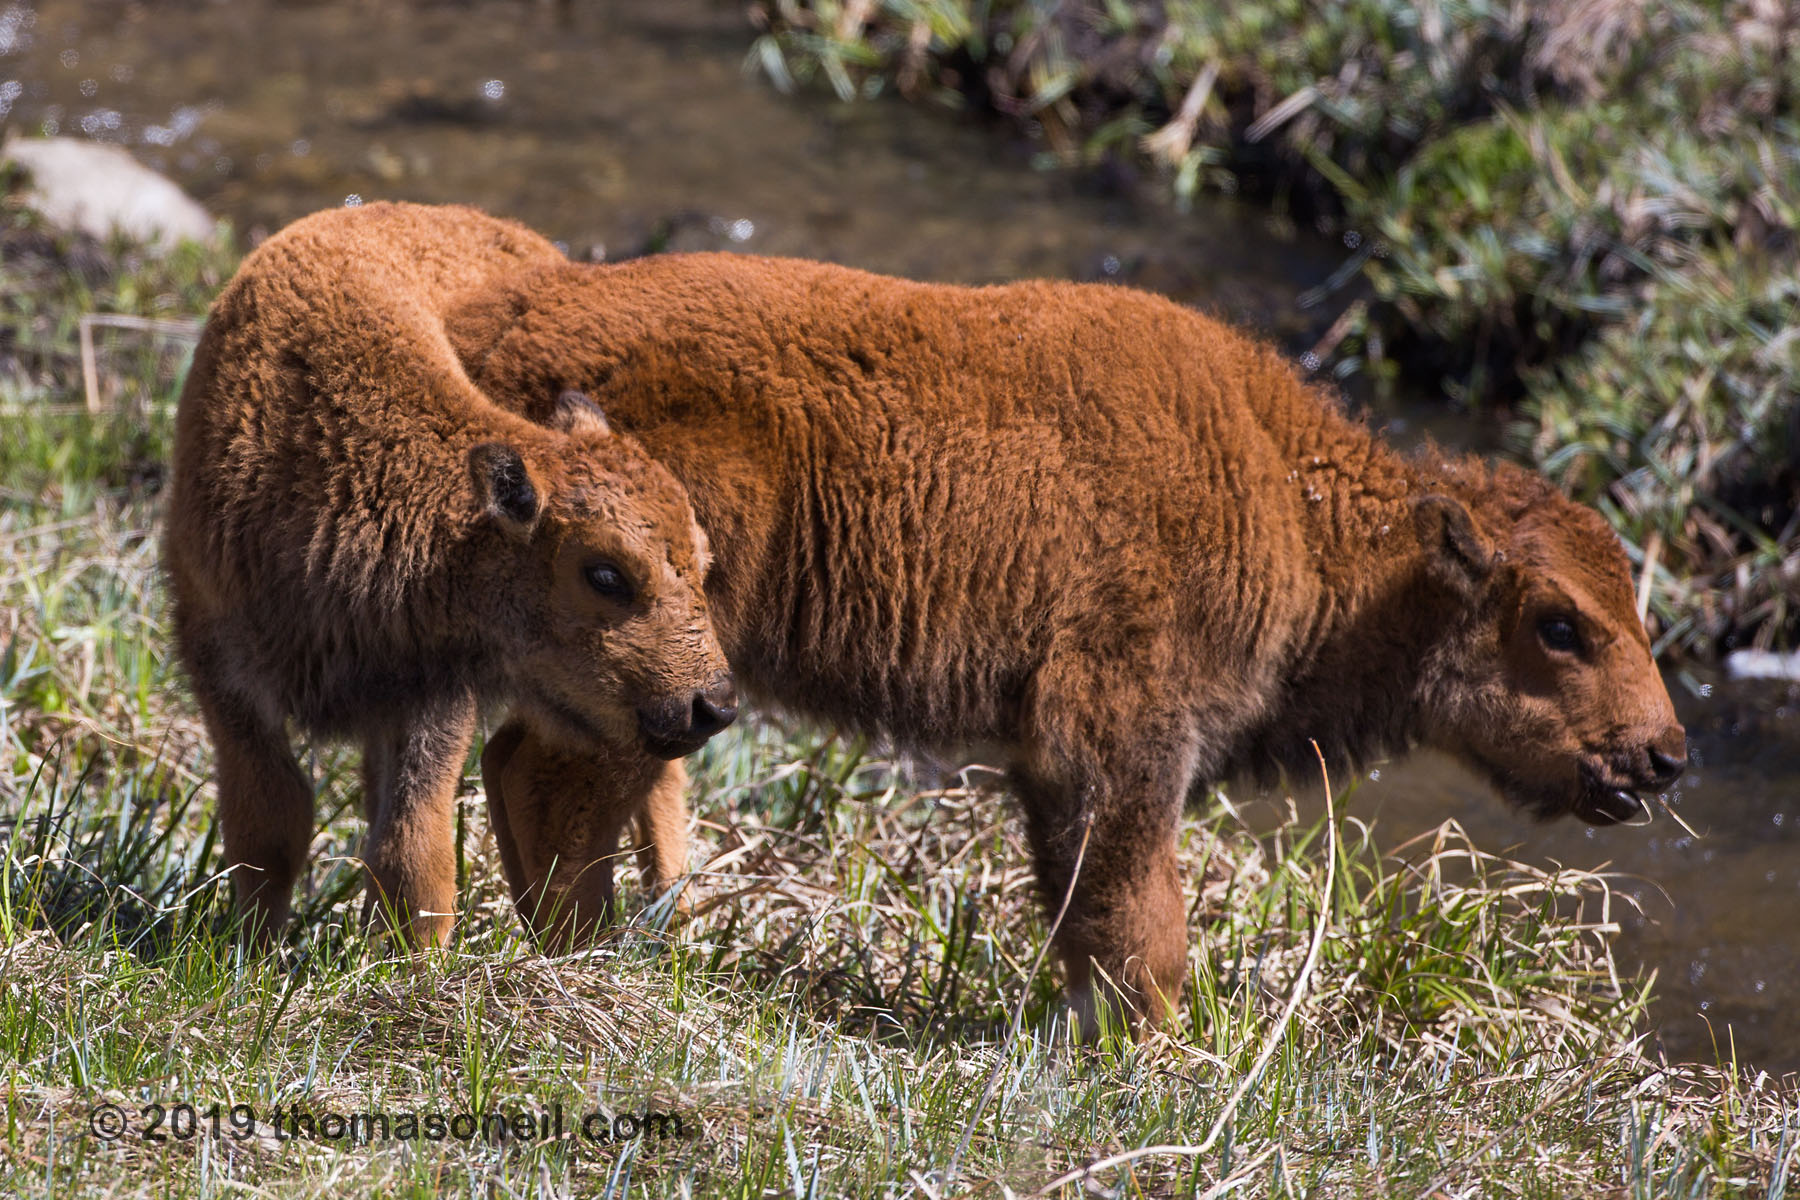 Baby bison, Custer State Park, May 2019.  Click for next photo.